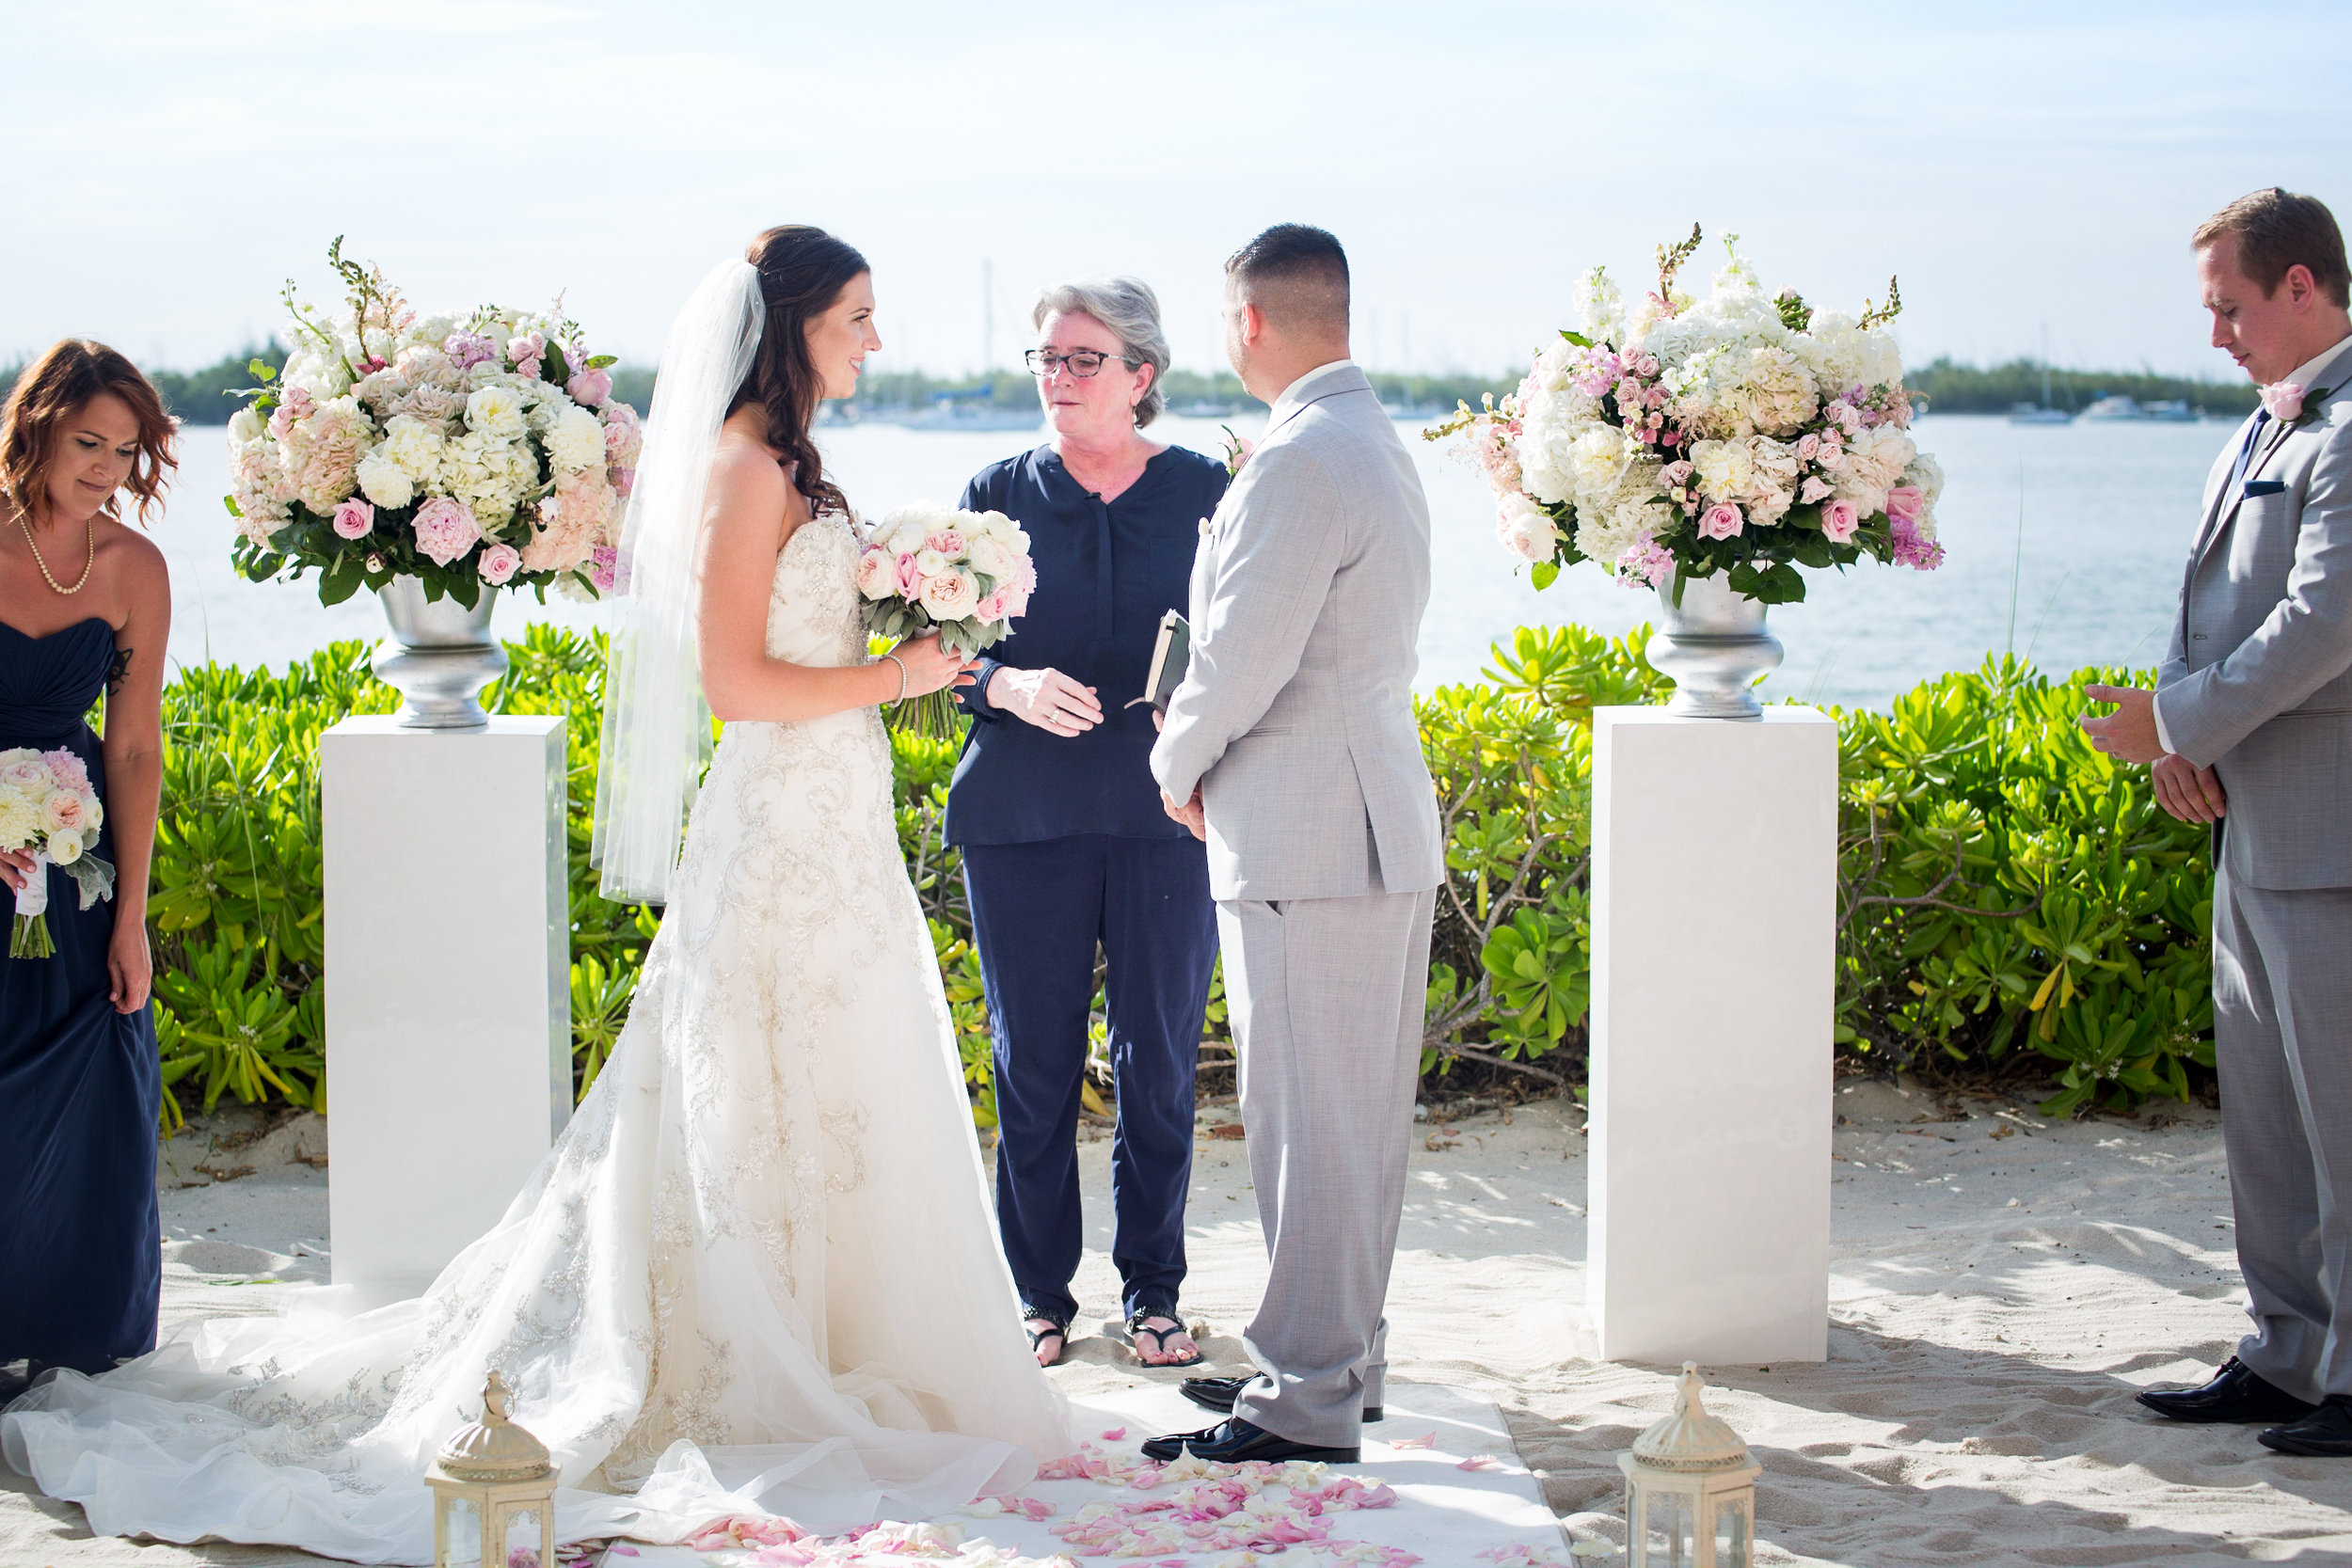 Patti Flowers officiates the unity of Jennifer and Justin with Maid of Honor and Best Man at both sides